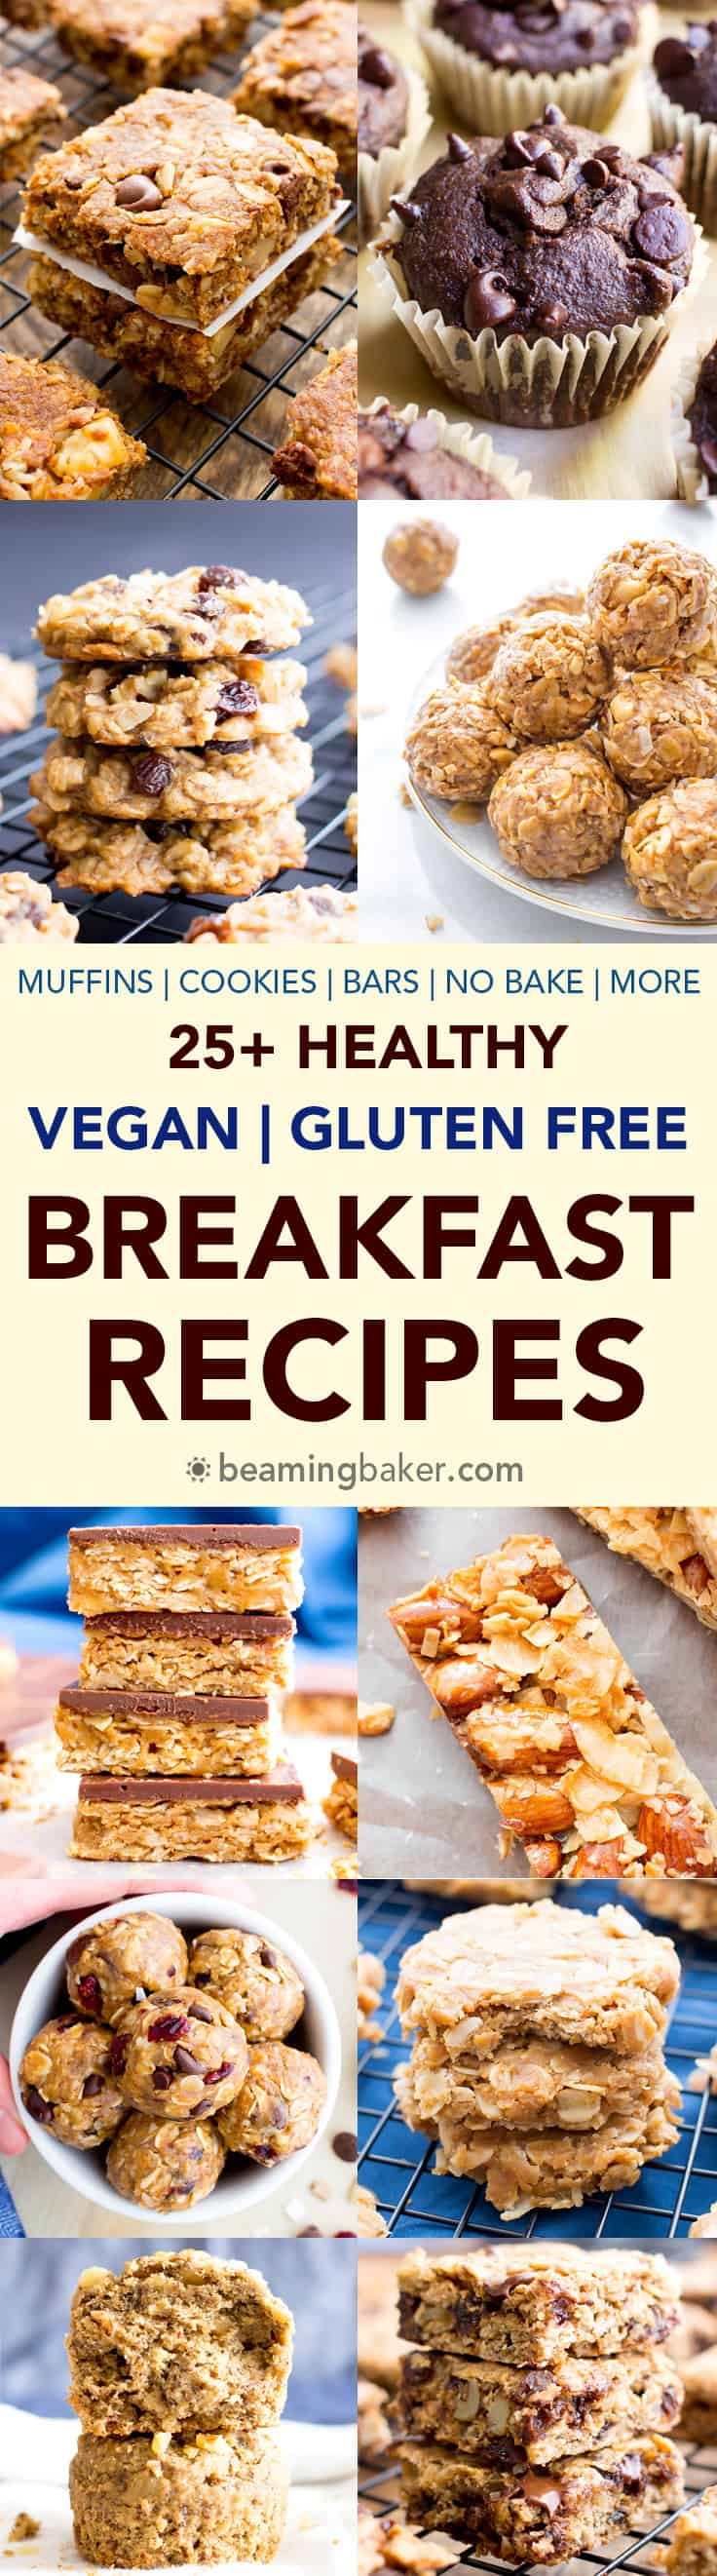 25+ Healthy Gluten Free Breakfast Recipes (V, GF): A satisfying collection of nutritious, gluten free vegan healthy breakfast recipes to help you start your day off right! #Vegan #GlutenFree #DairyFree #Breakfast #Healthy | BeamingBaker.com